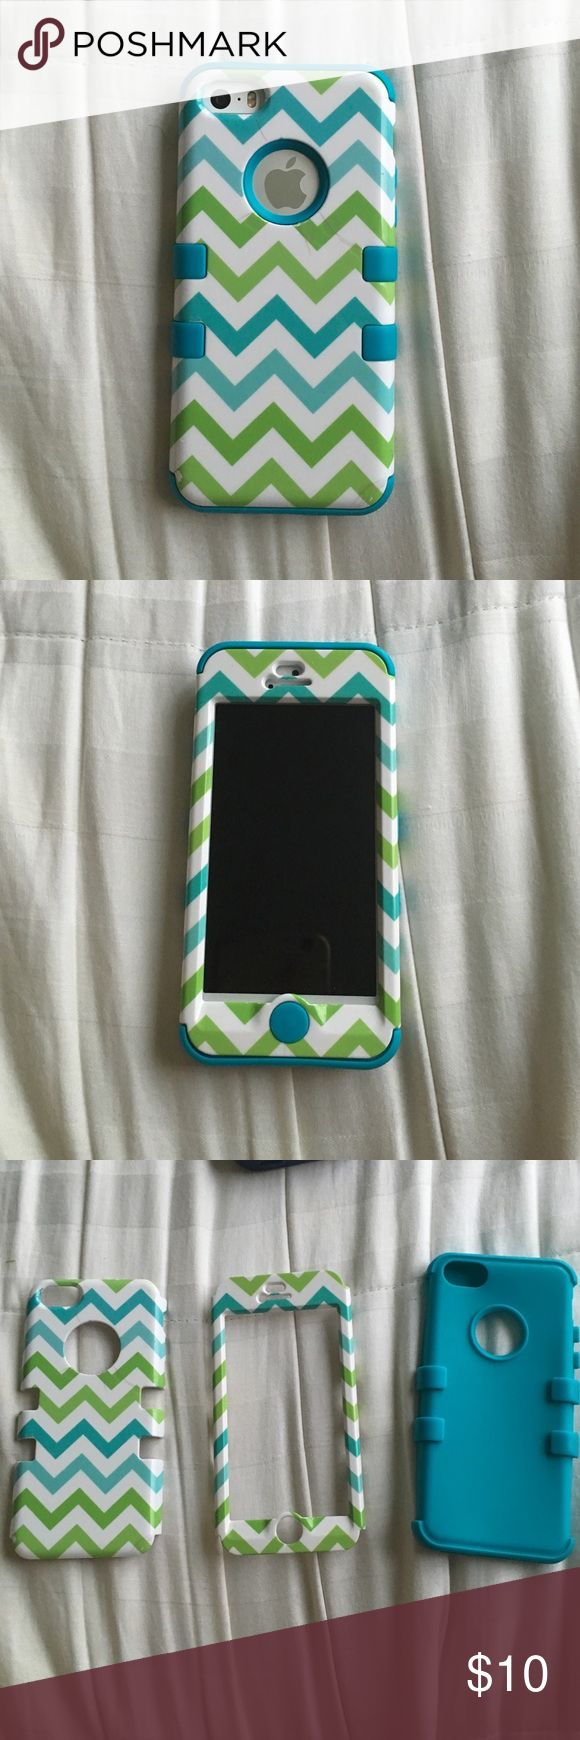 Phone case for IPhone 5/5c/5s This is a super cute IPhone case for IPhone 5/5c/5s!!! It's a knock off otter box with a cute chevron design in colors blue, light blue, green and light green! The first layer is blue rubber and the second is a hard plastic for double protection! The back piece does have 4 small cracks in the middle but nothing major and still works perfect. Great condition!!! Accessories Phone Cases